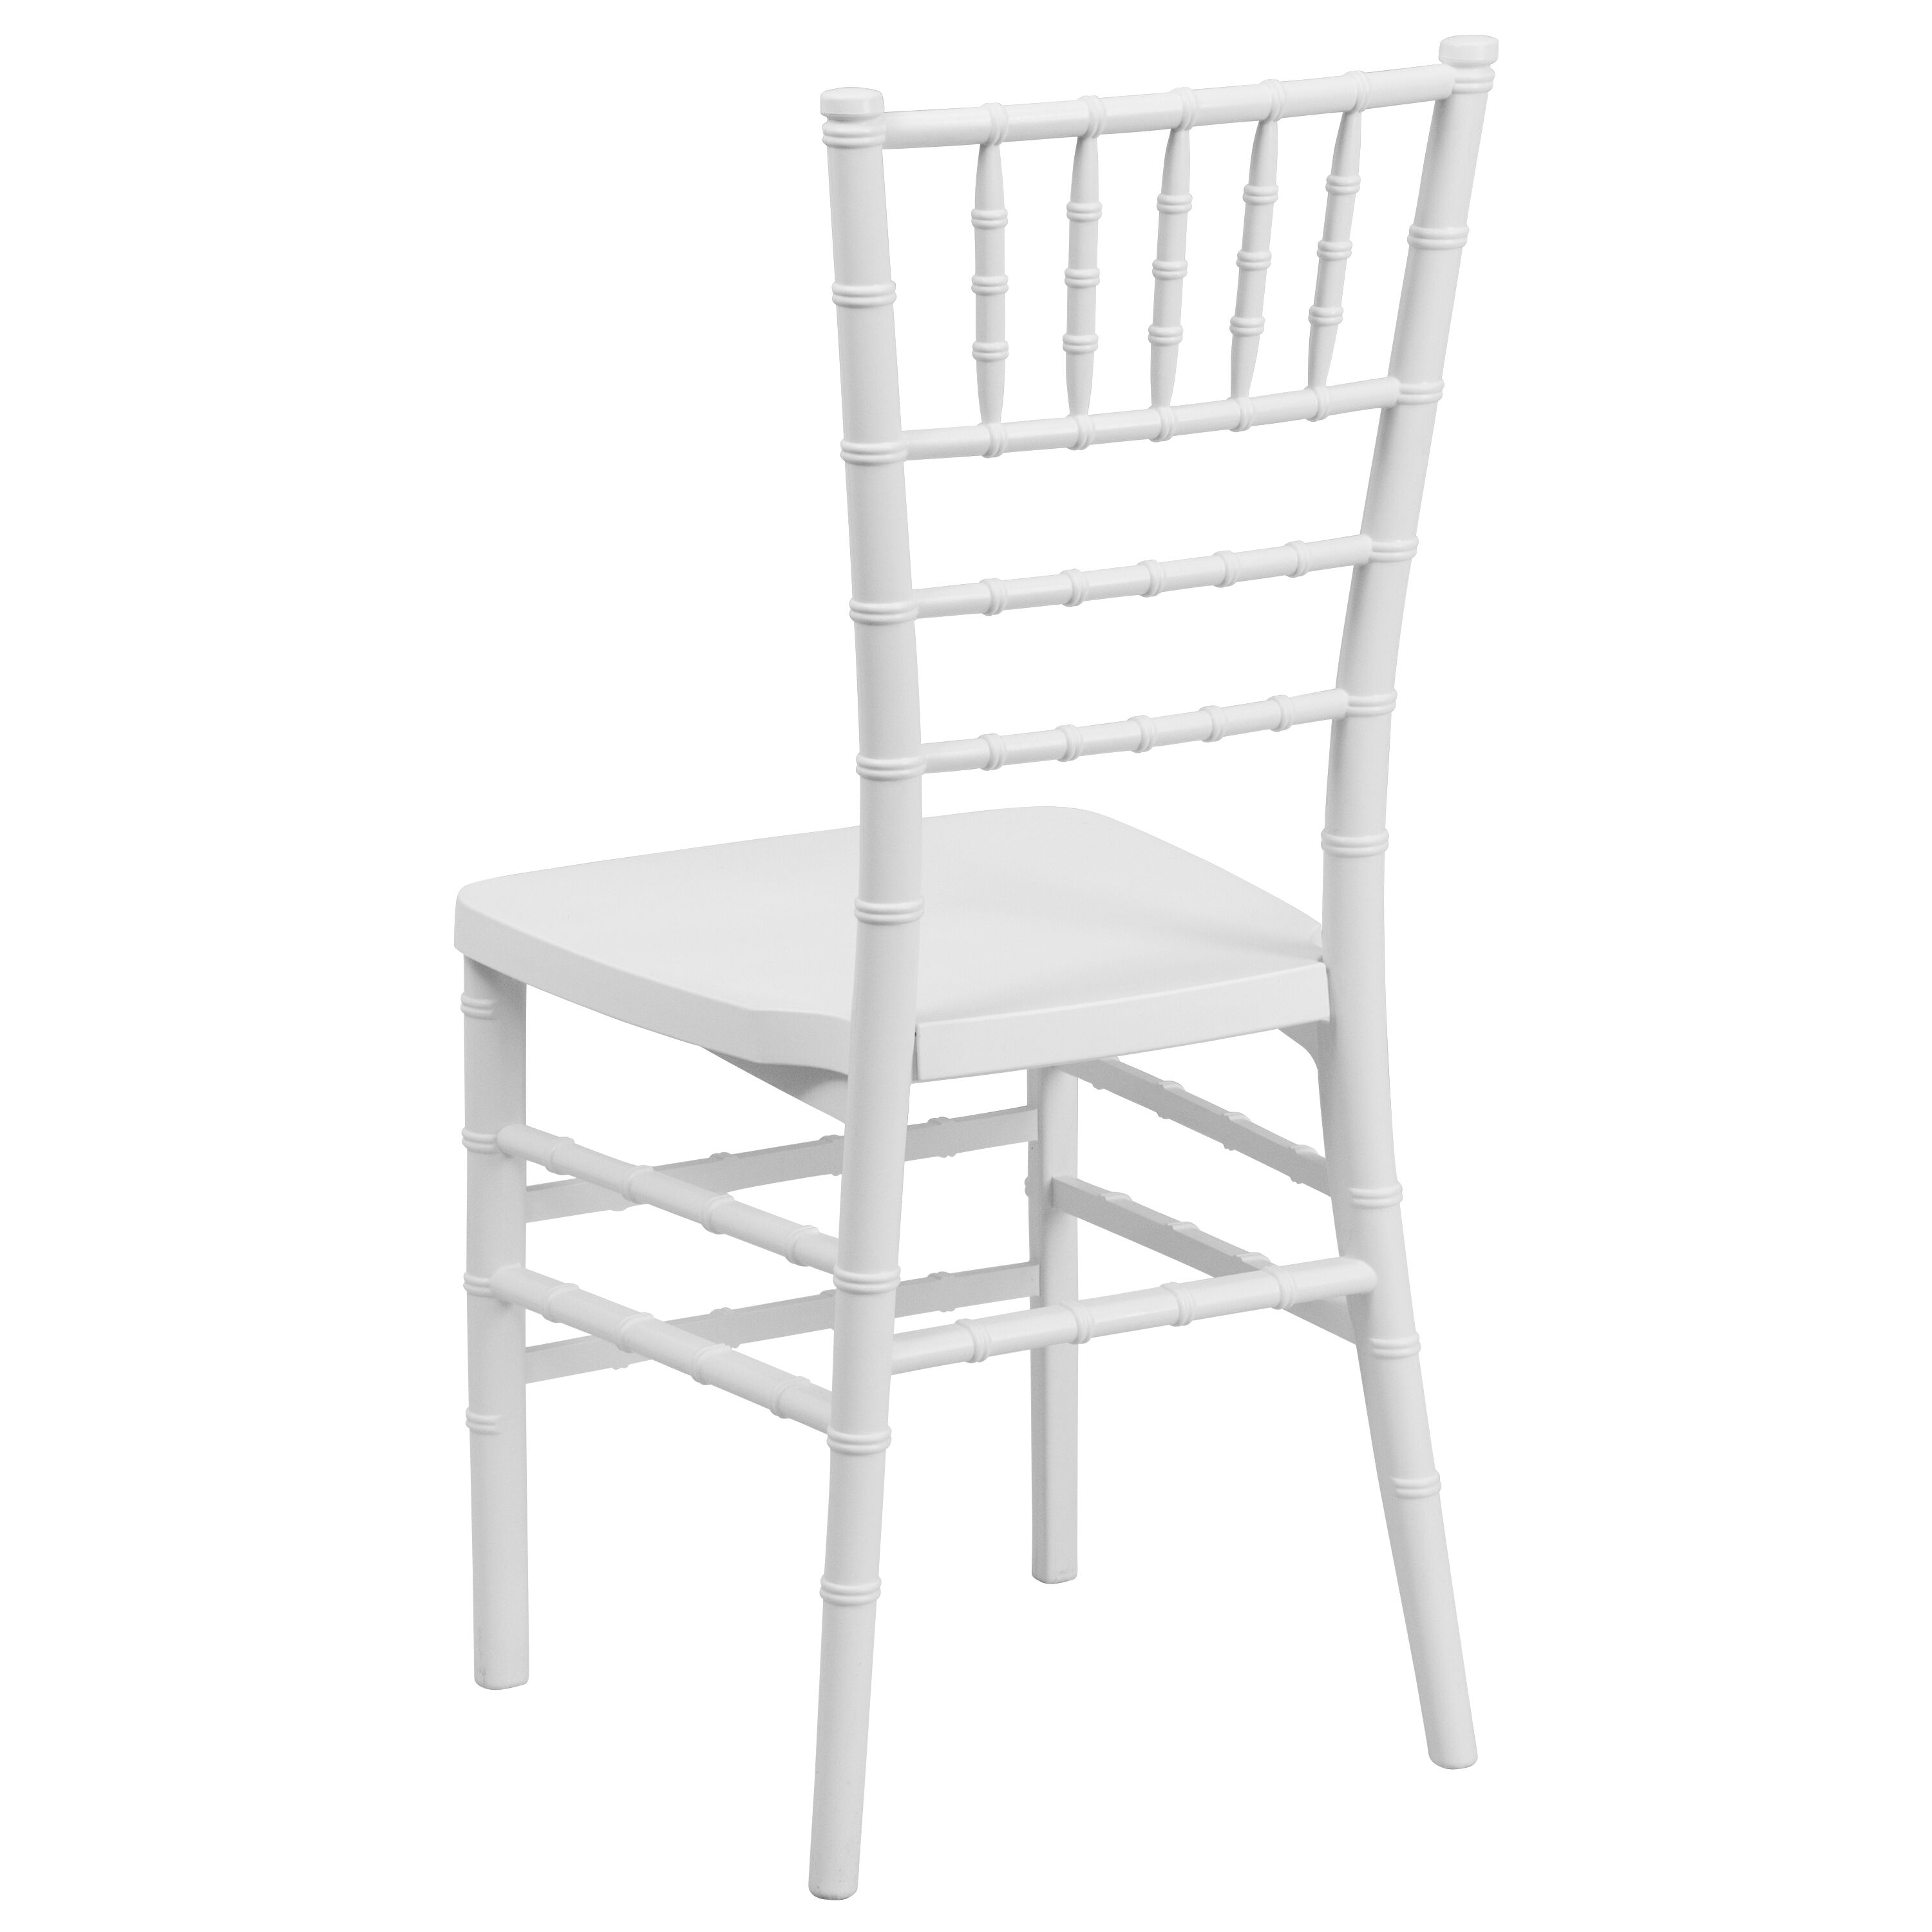 plastic chiavari chairs bistro table and walmart white resin chair le gg stackchairs4less